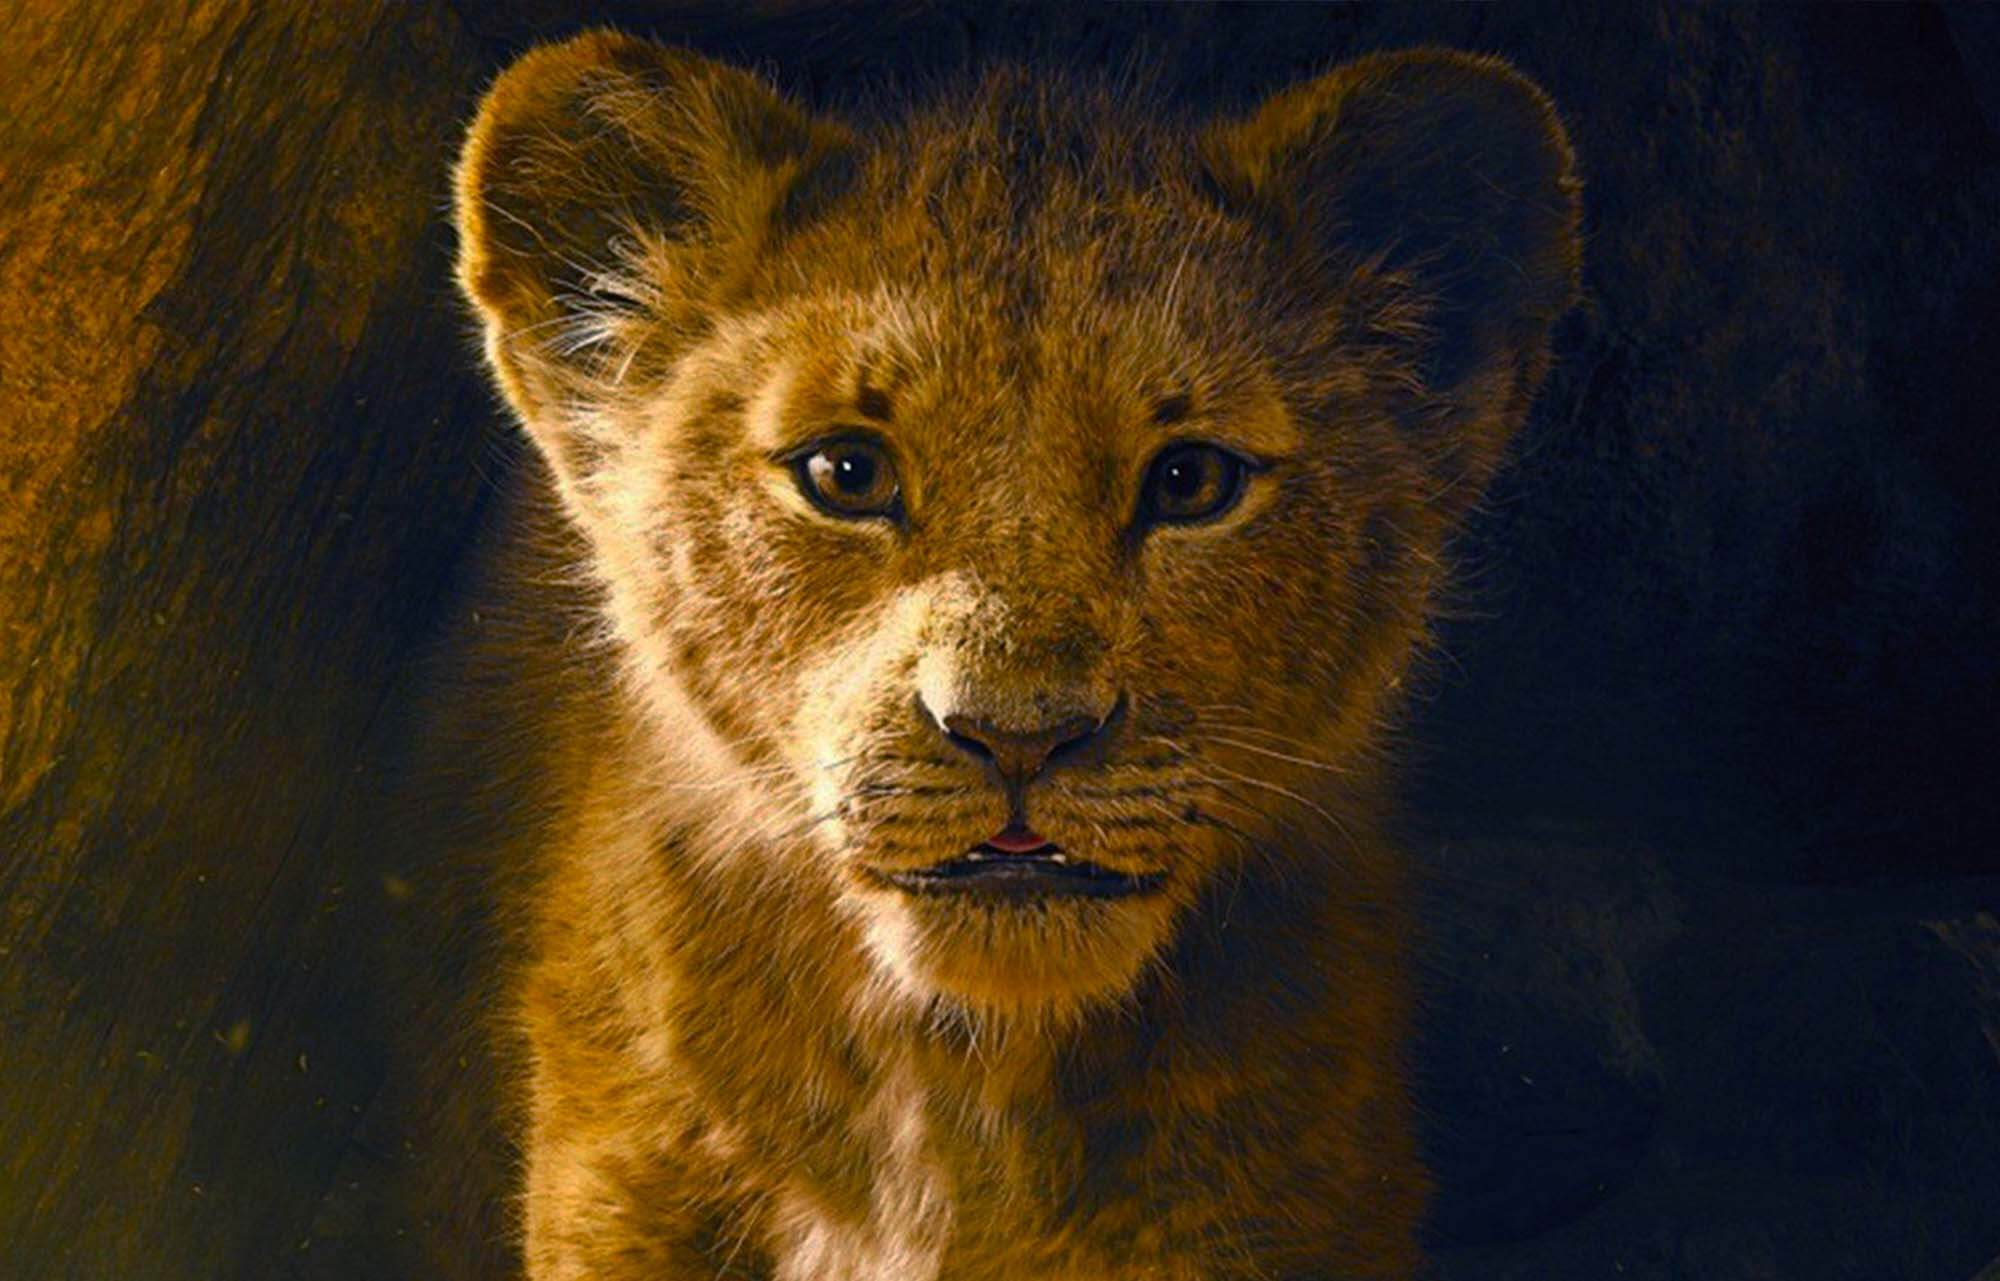 New 'Lion King' Trailer Breaks Disney Record For Most Views In 24 Hours [Watch] Lion King cover